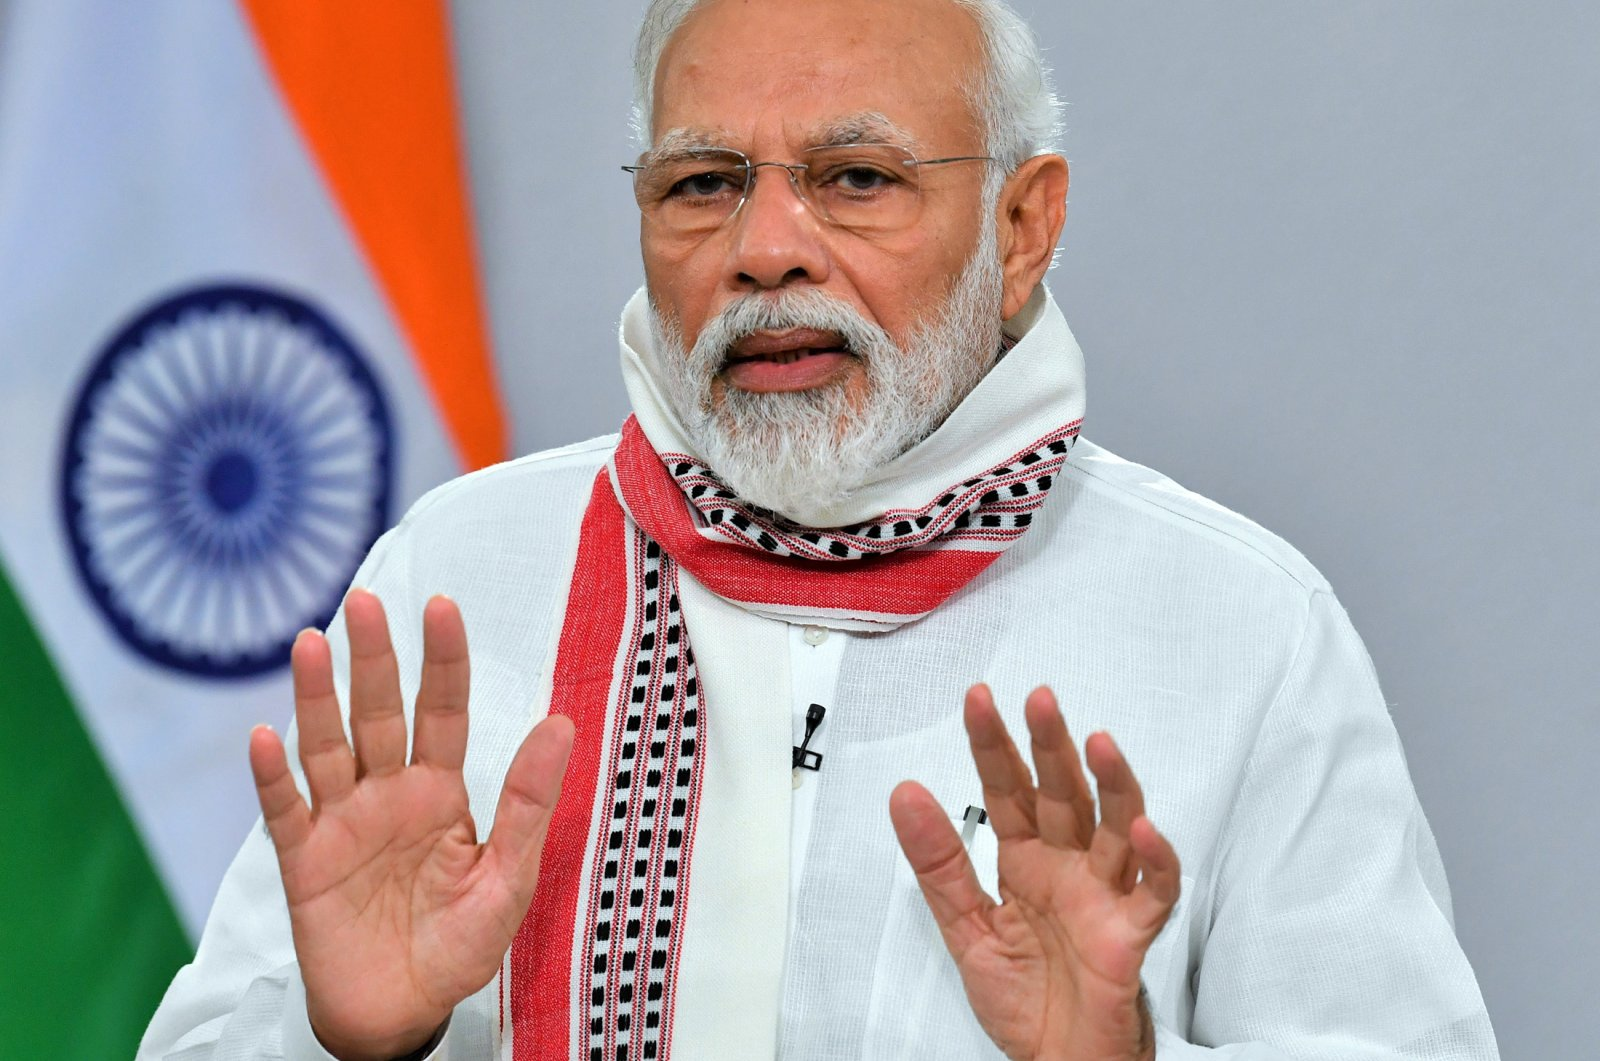 Modi's Hindu nationalists have been widely denounced for fueling anti-Muslim sentiment across the country. New Delhi, India, March 14, 2020, New Delhi, India (AA Photo)